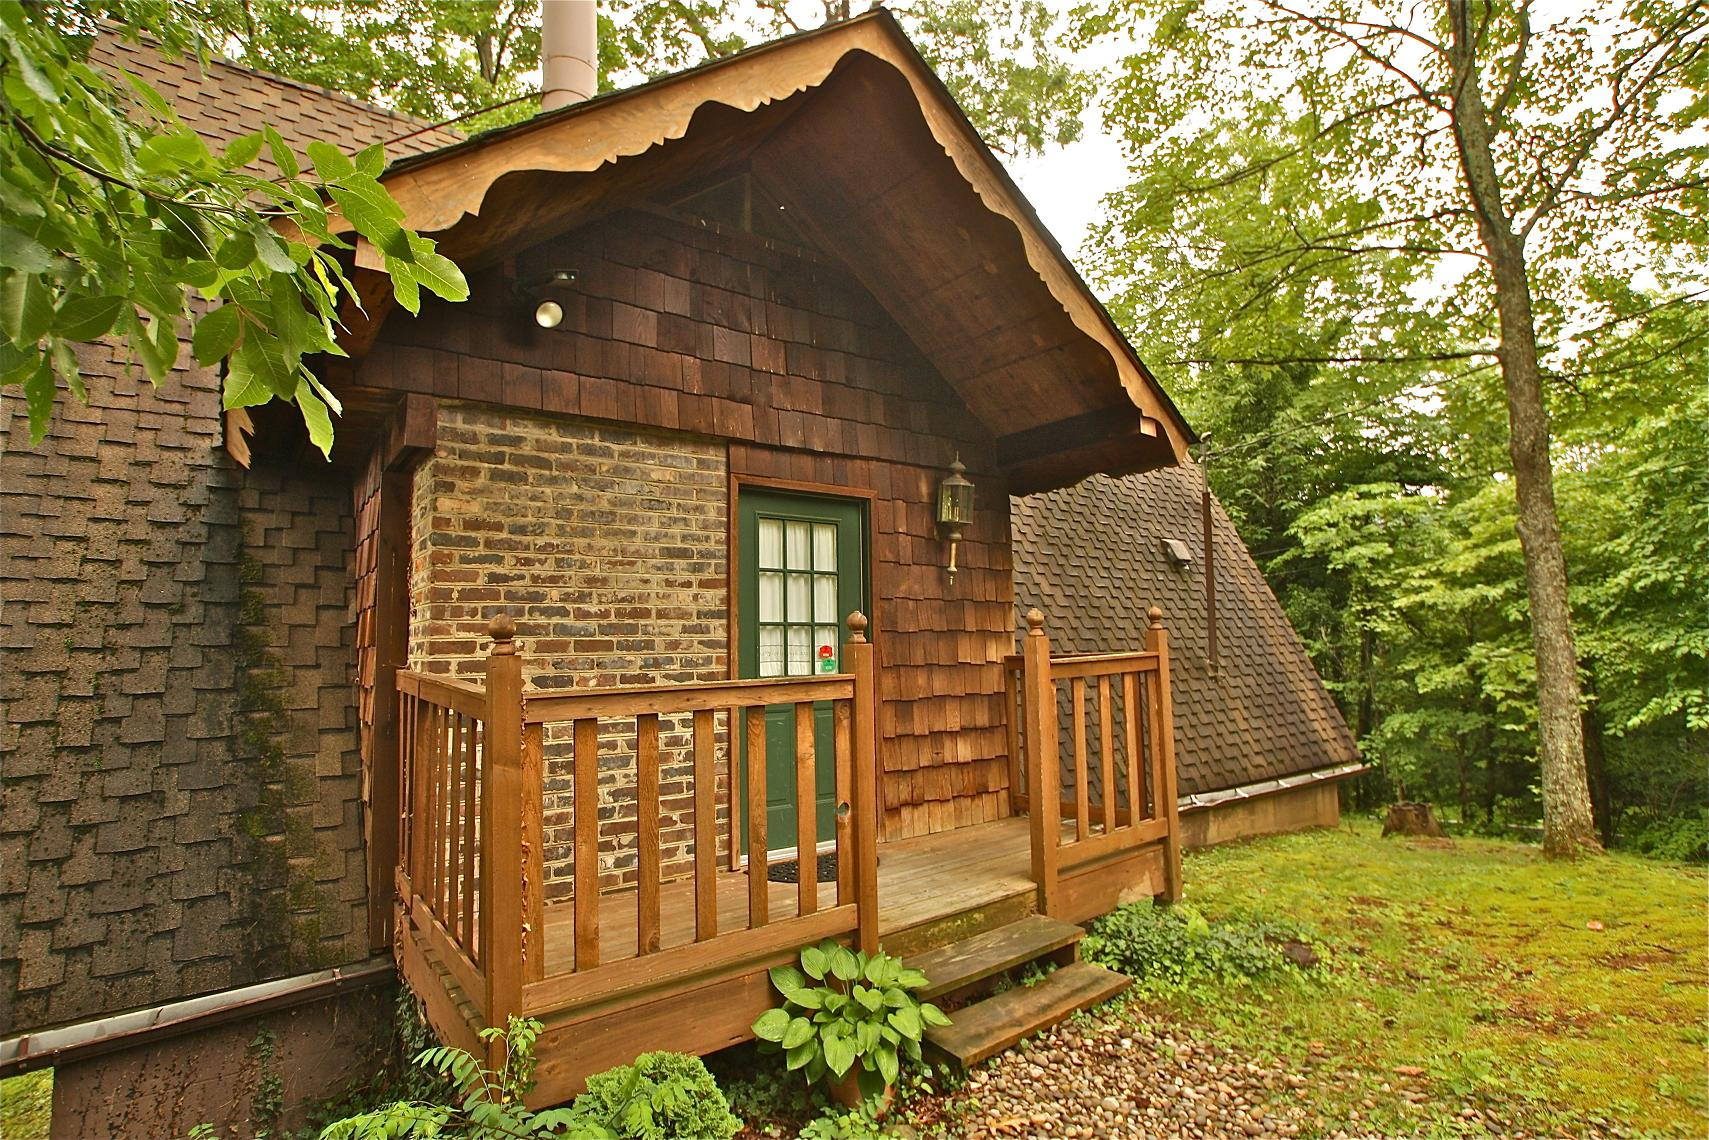 Suite One A 1 Bedroom Cabin In Gatlinburg Tennessee Mountain Laurel Chalets Gatlinburg Cabin